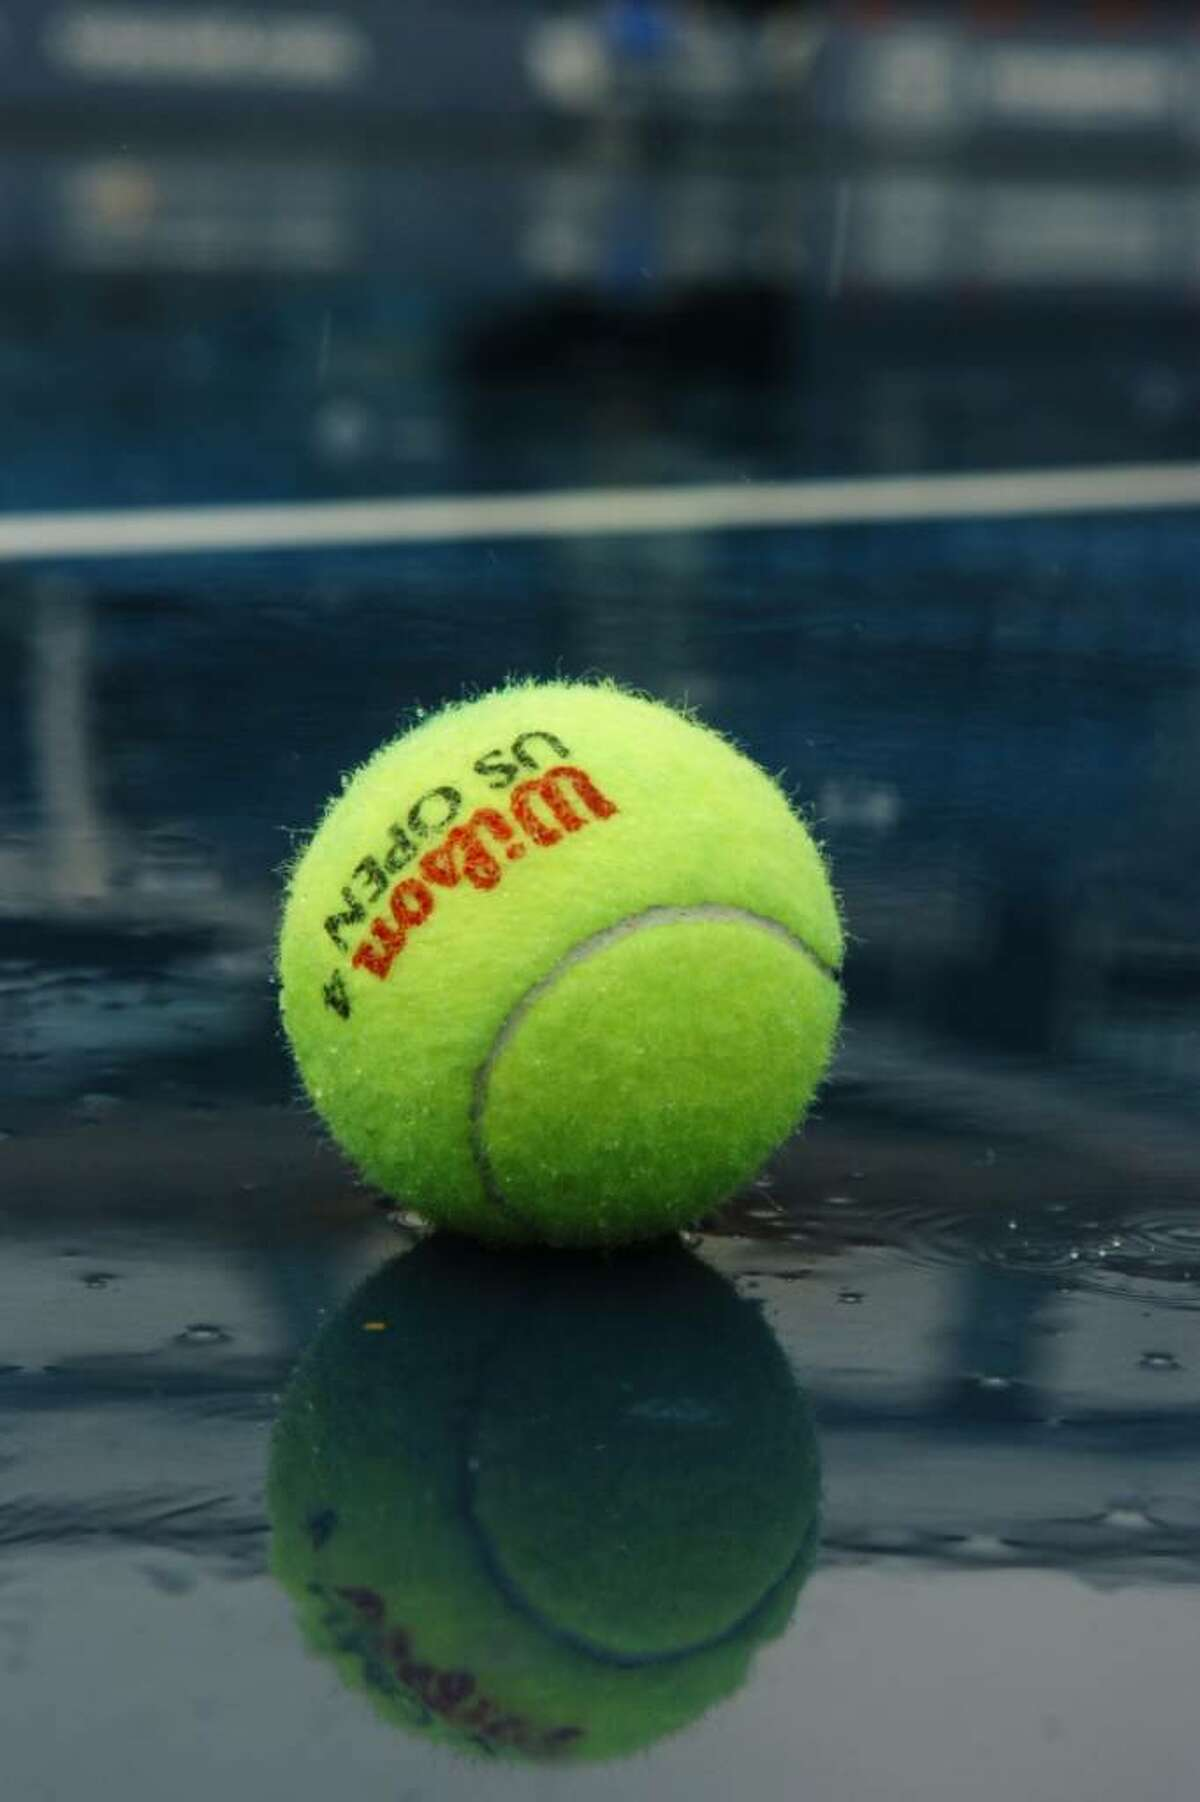 A soggy tennis ball sits in a puddle on the Stadium Court of the Connecticut Tennis Center, in New Haven, during Friday's rain.